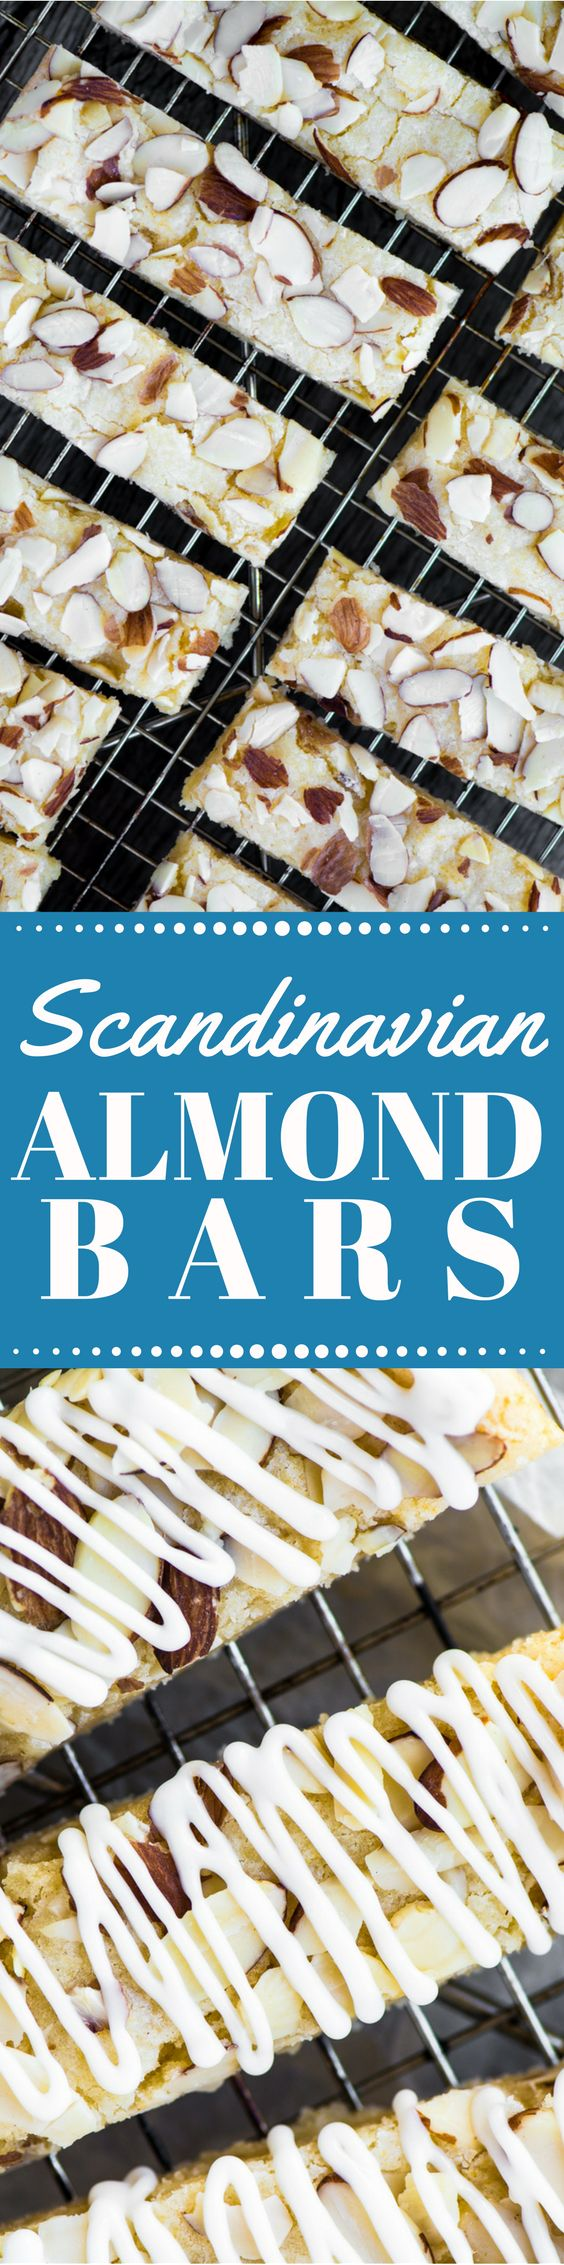 Scandinavian Almond Bars are soft, chewy shortbread bars literally packed with almond flavor ~ they freeze beautifully, and make fabulous holiday gifts...but don't give them all away, save a few for yourself, you deserve it!